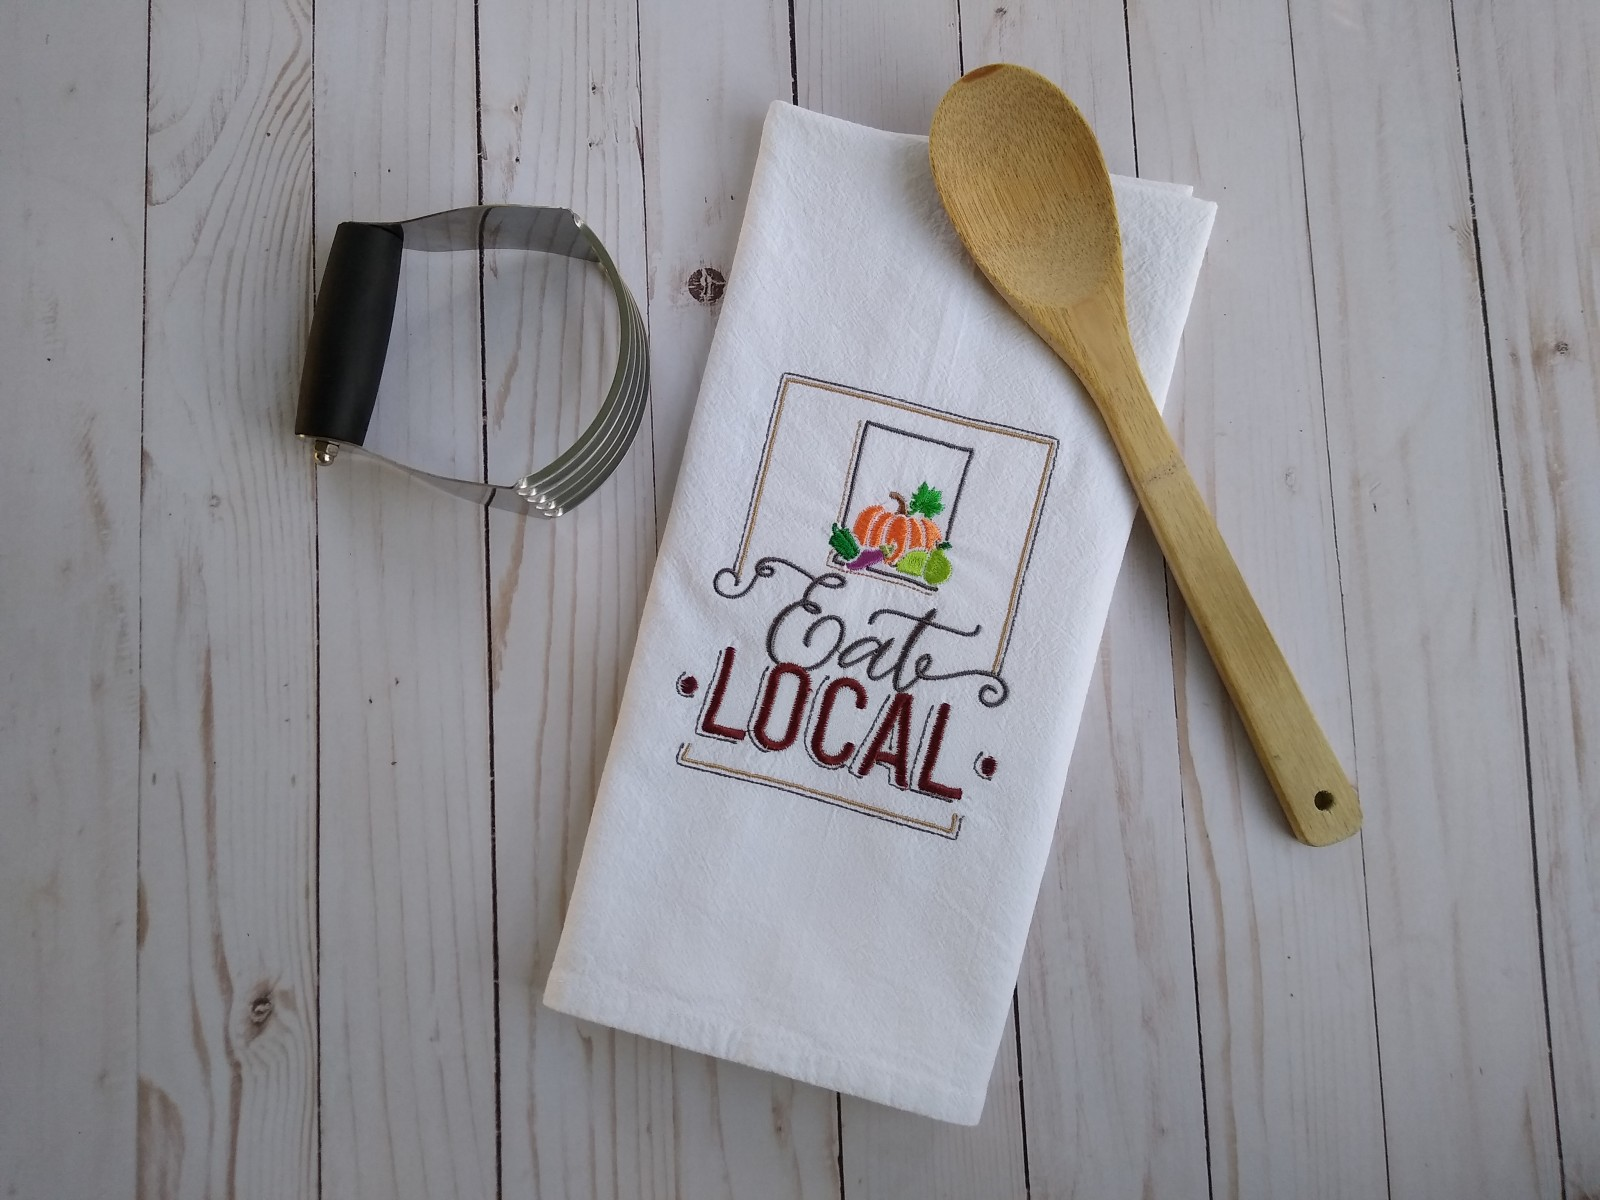 Towel – Eat Local